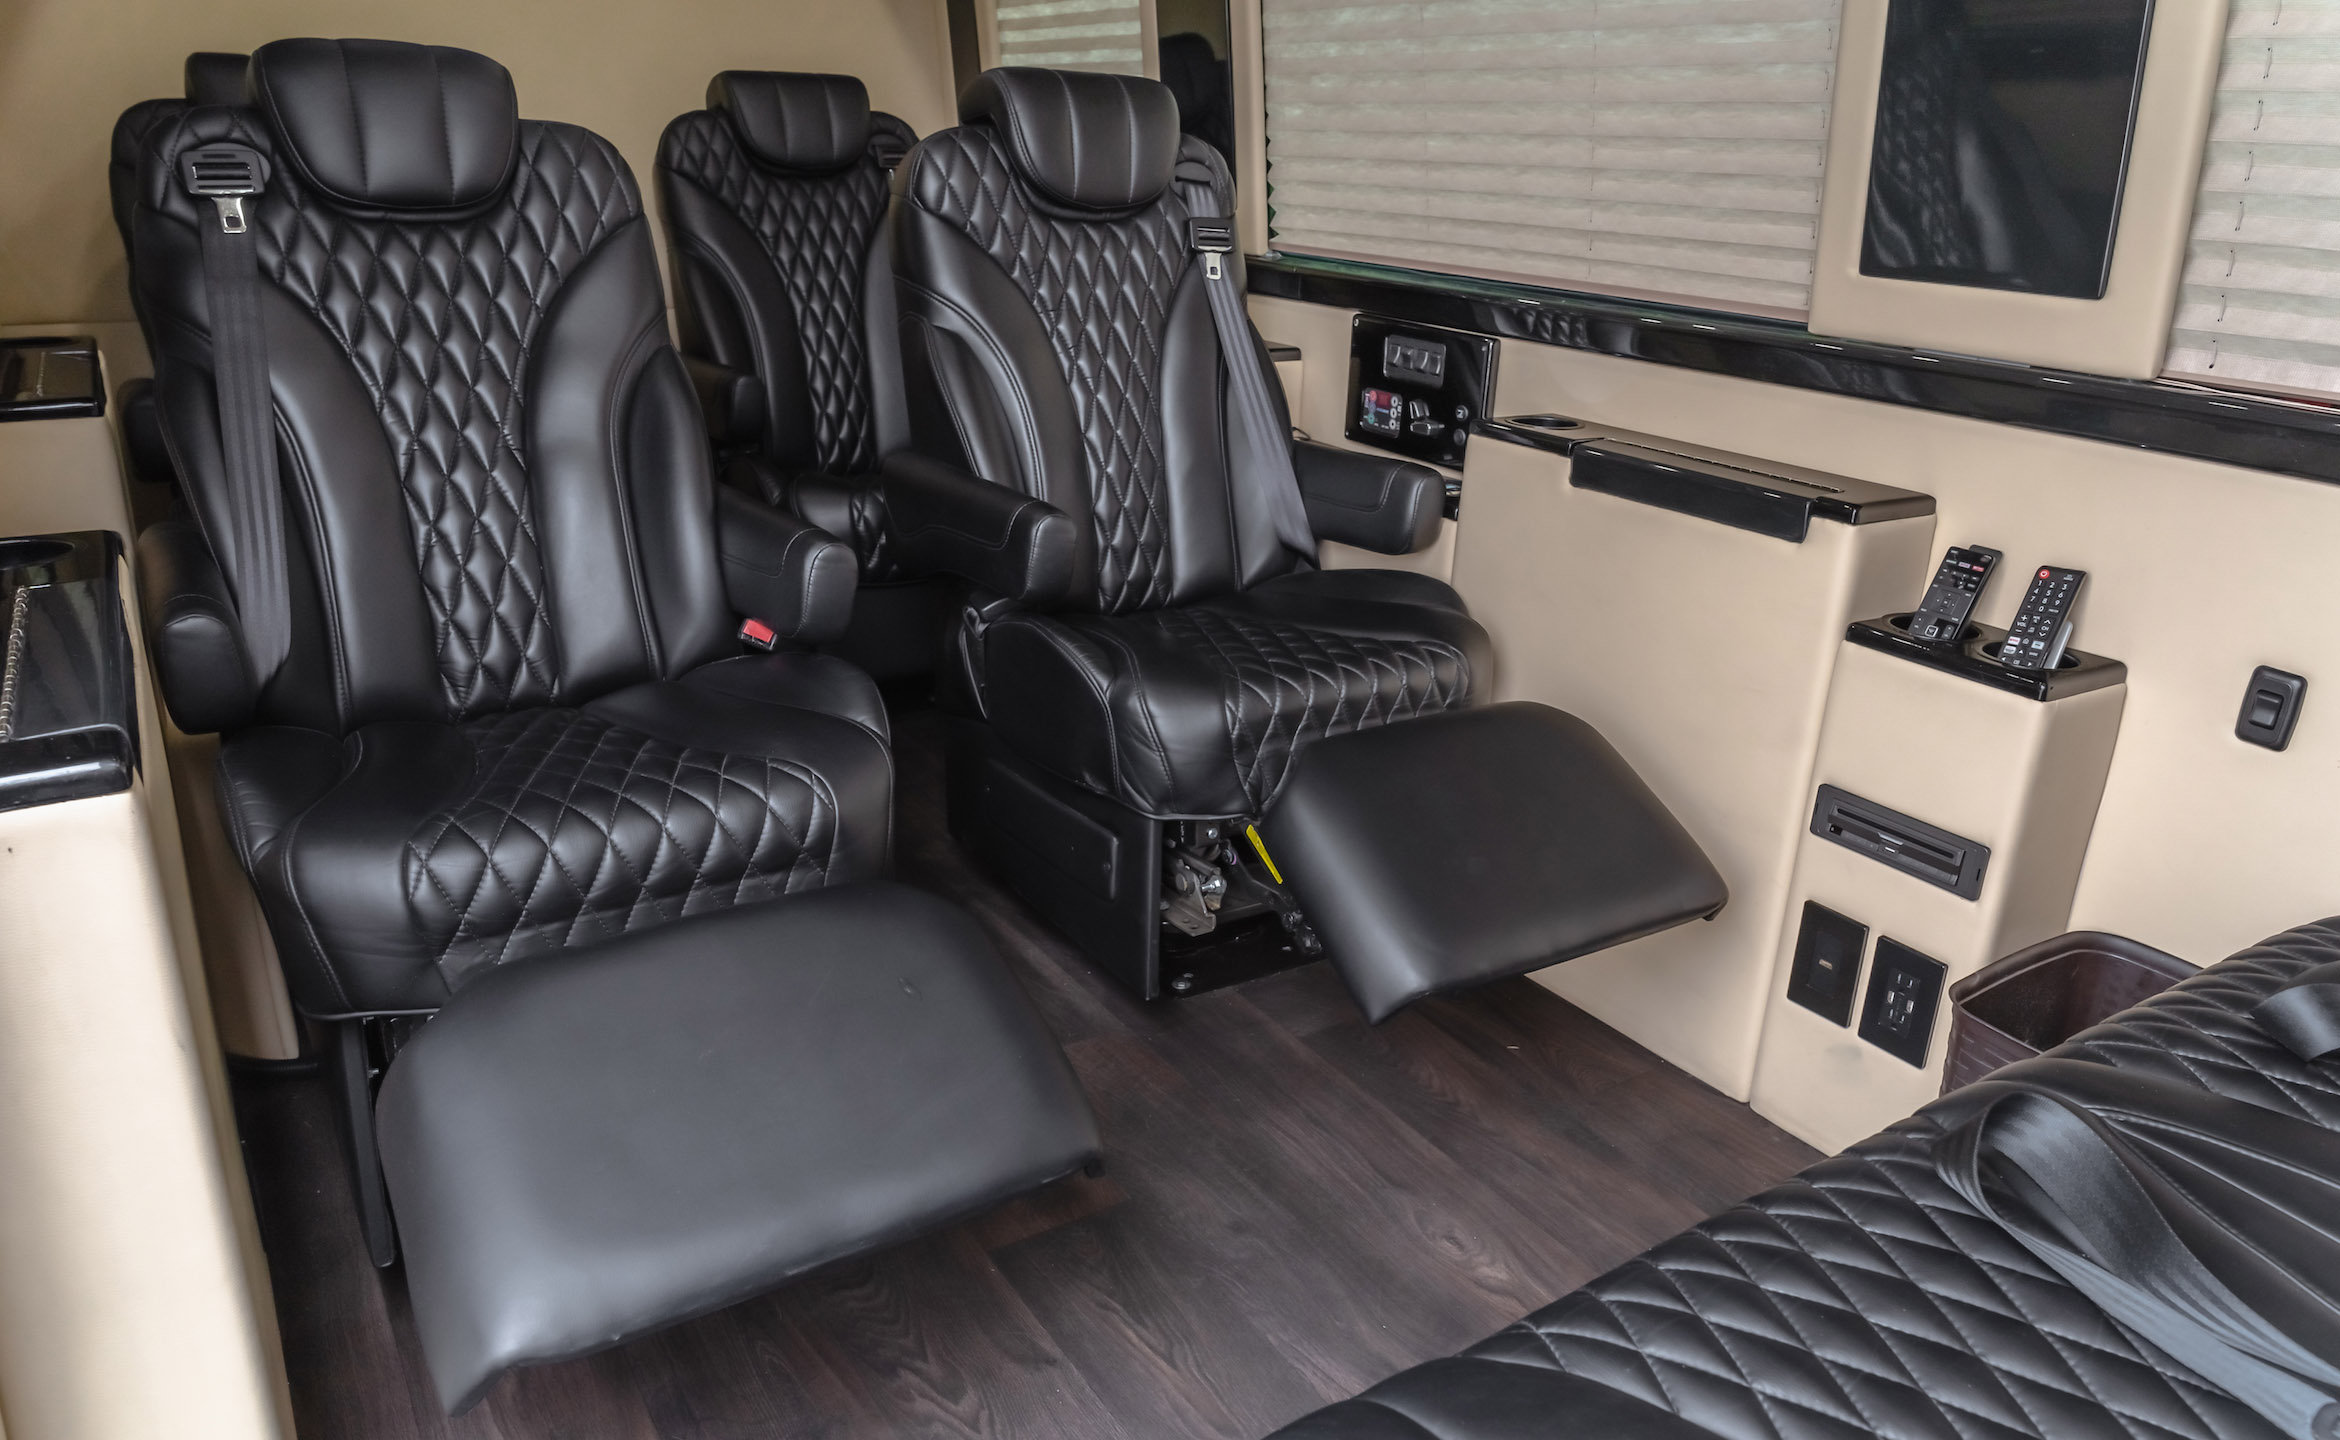 TI1 Luxury Trade In Sprinter Coach